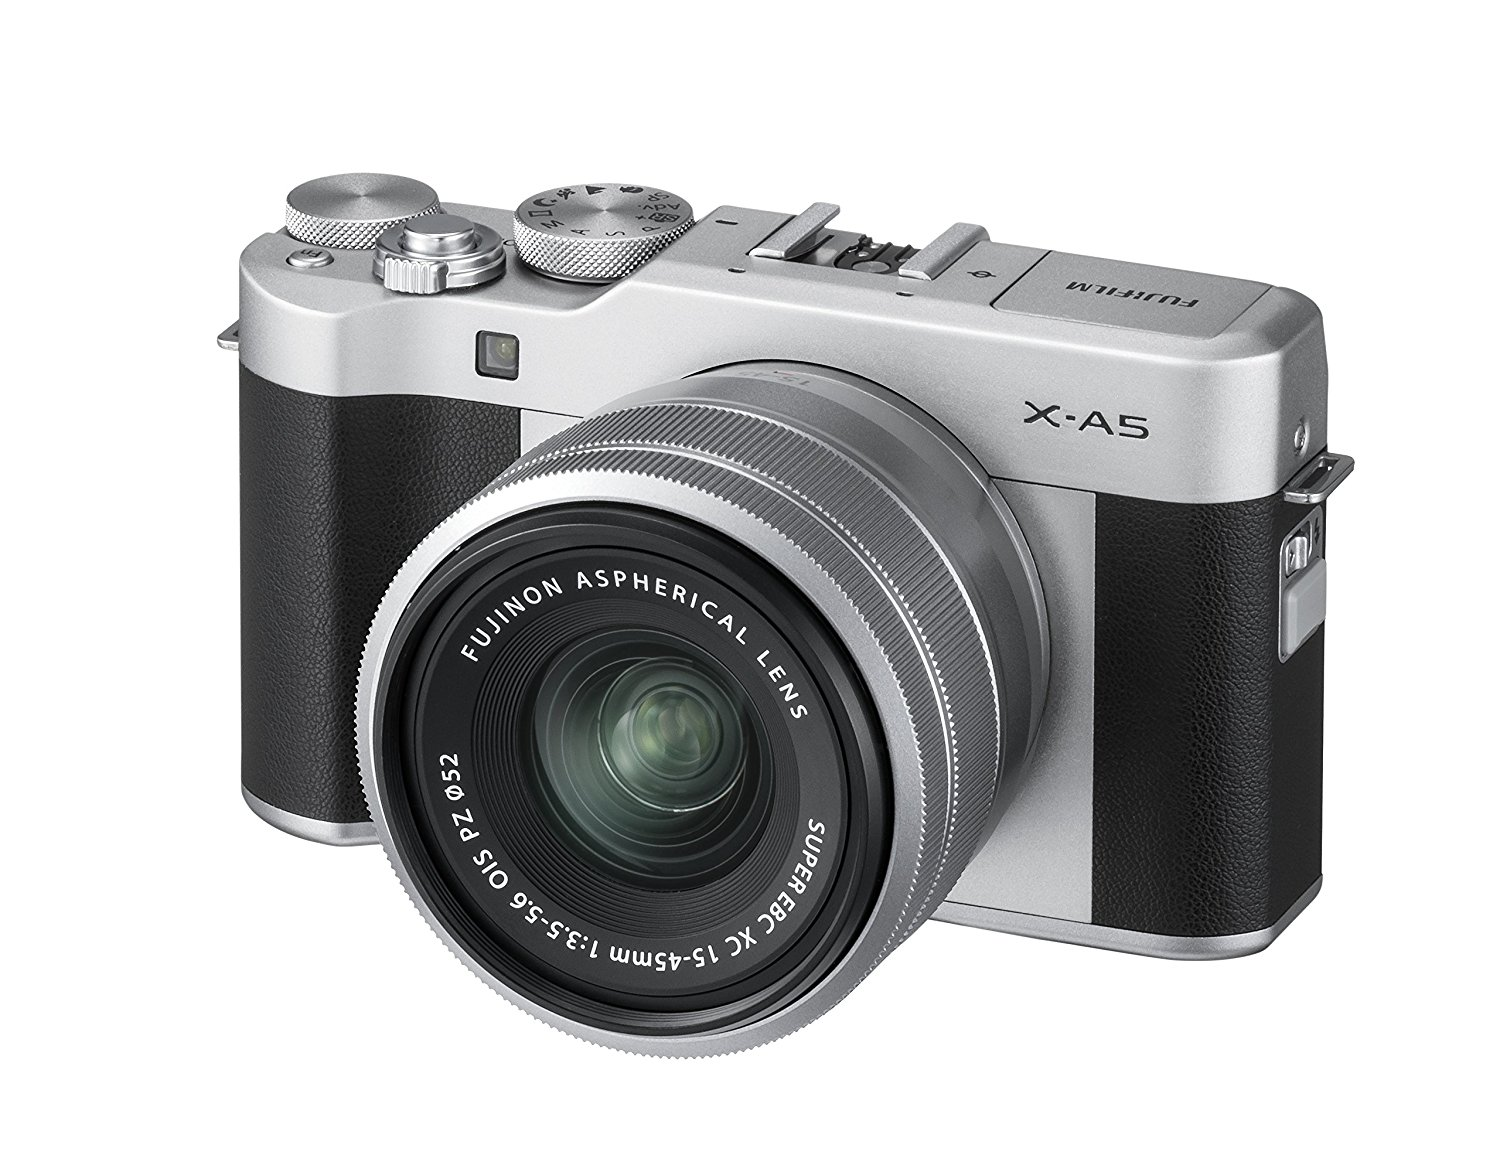 Fujifilm X-A5 Mirrorless Camera Image